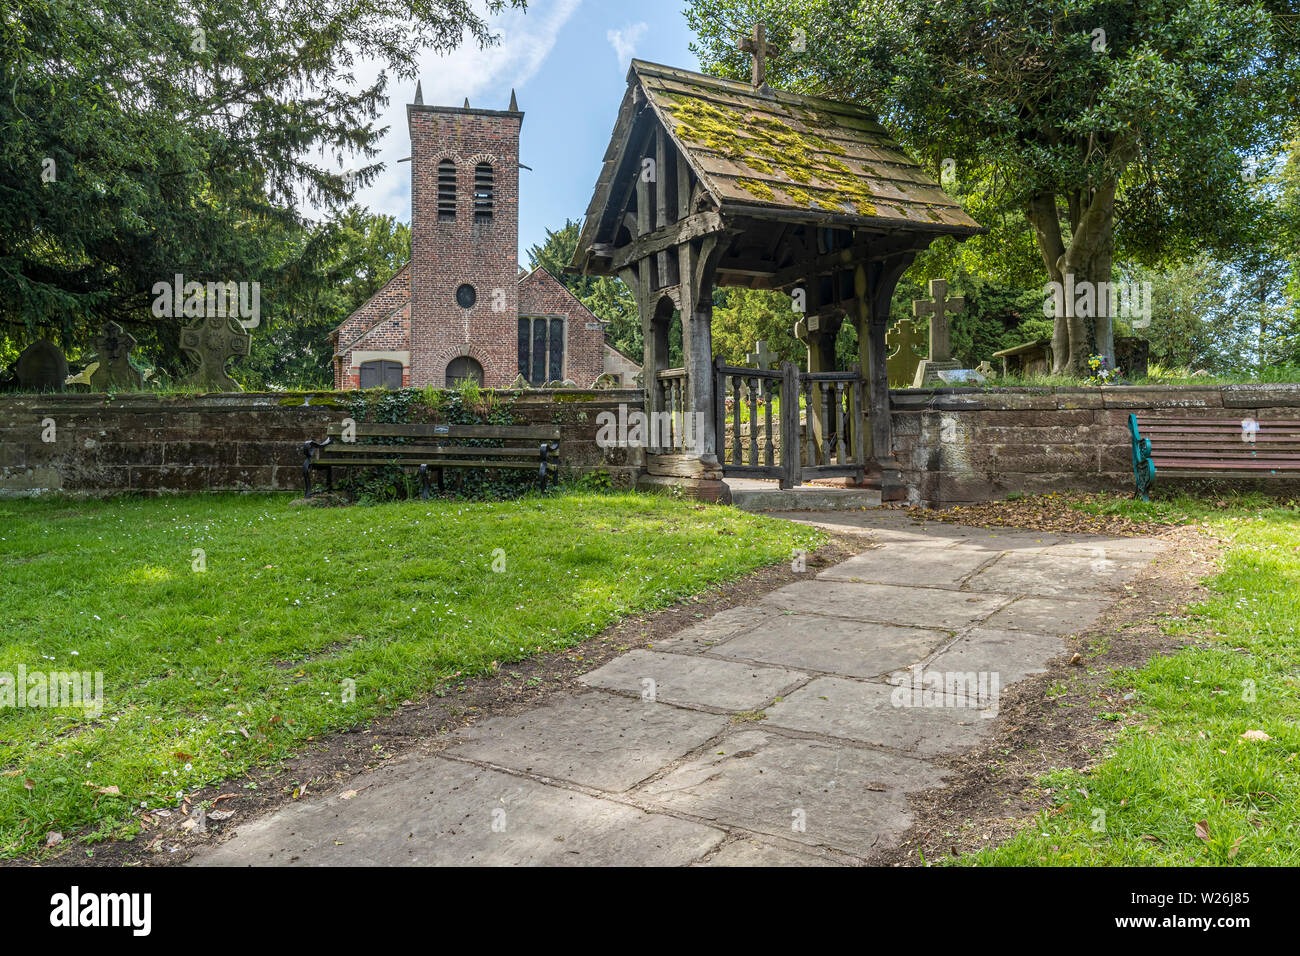 St Werburgh's Old Church, Warburton near to the Cheshire town of Lymm. Named after a Saxon abbess who became the patron saint of Chester. The church d - Stock Image